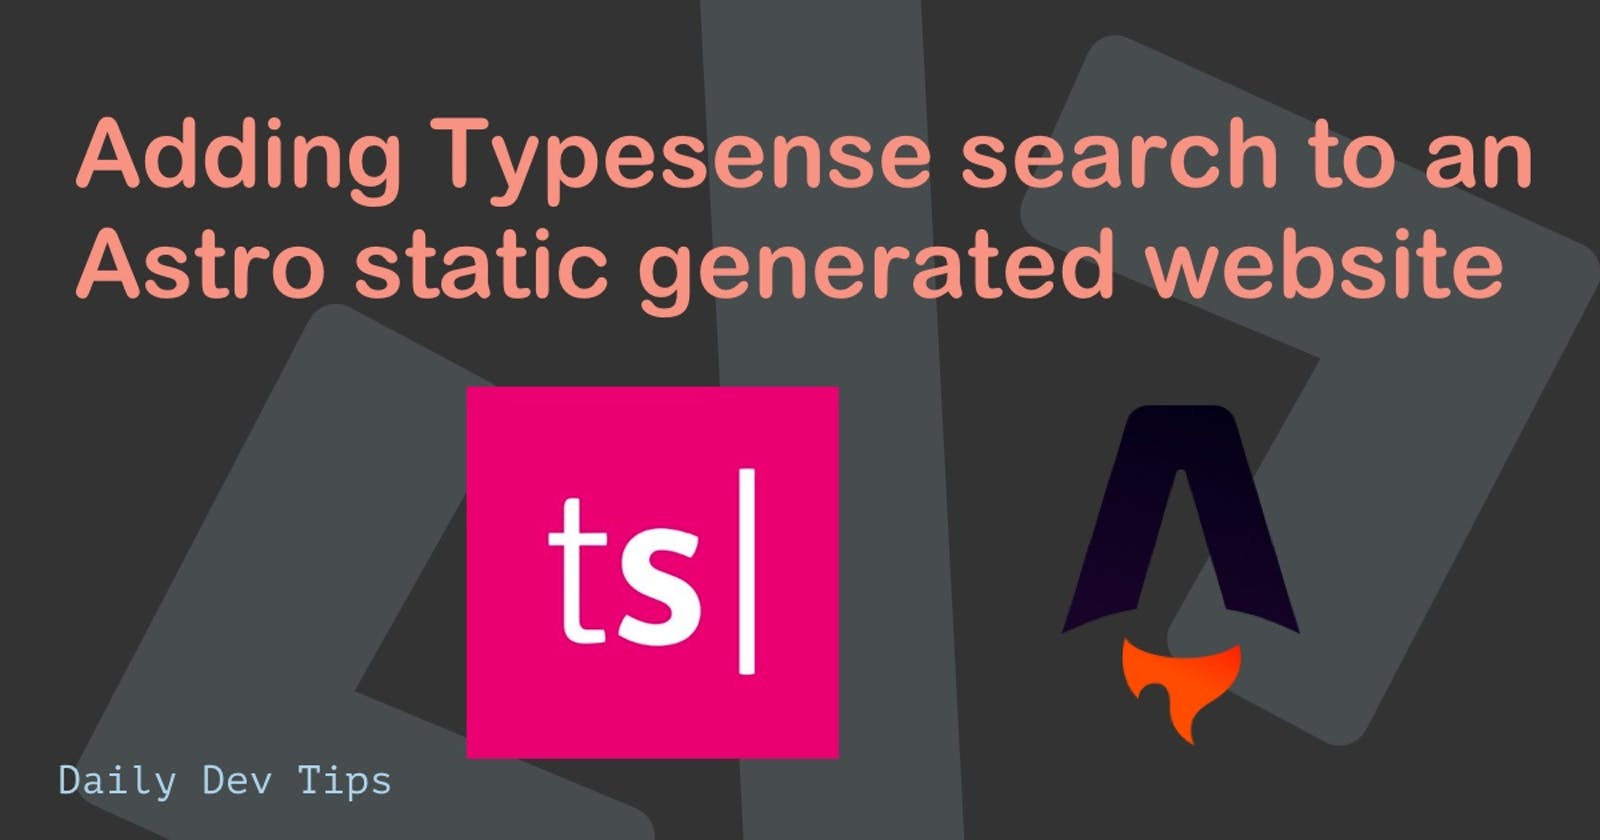 Adding Typesense search to an Astro static generated website